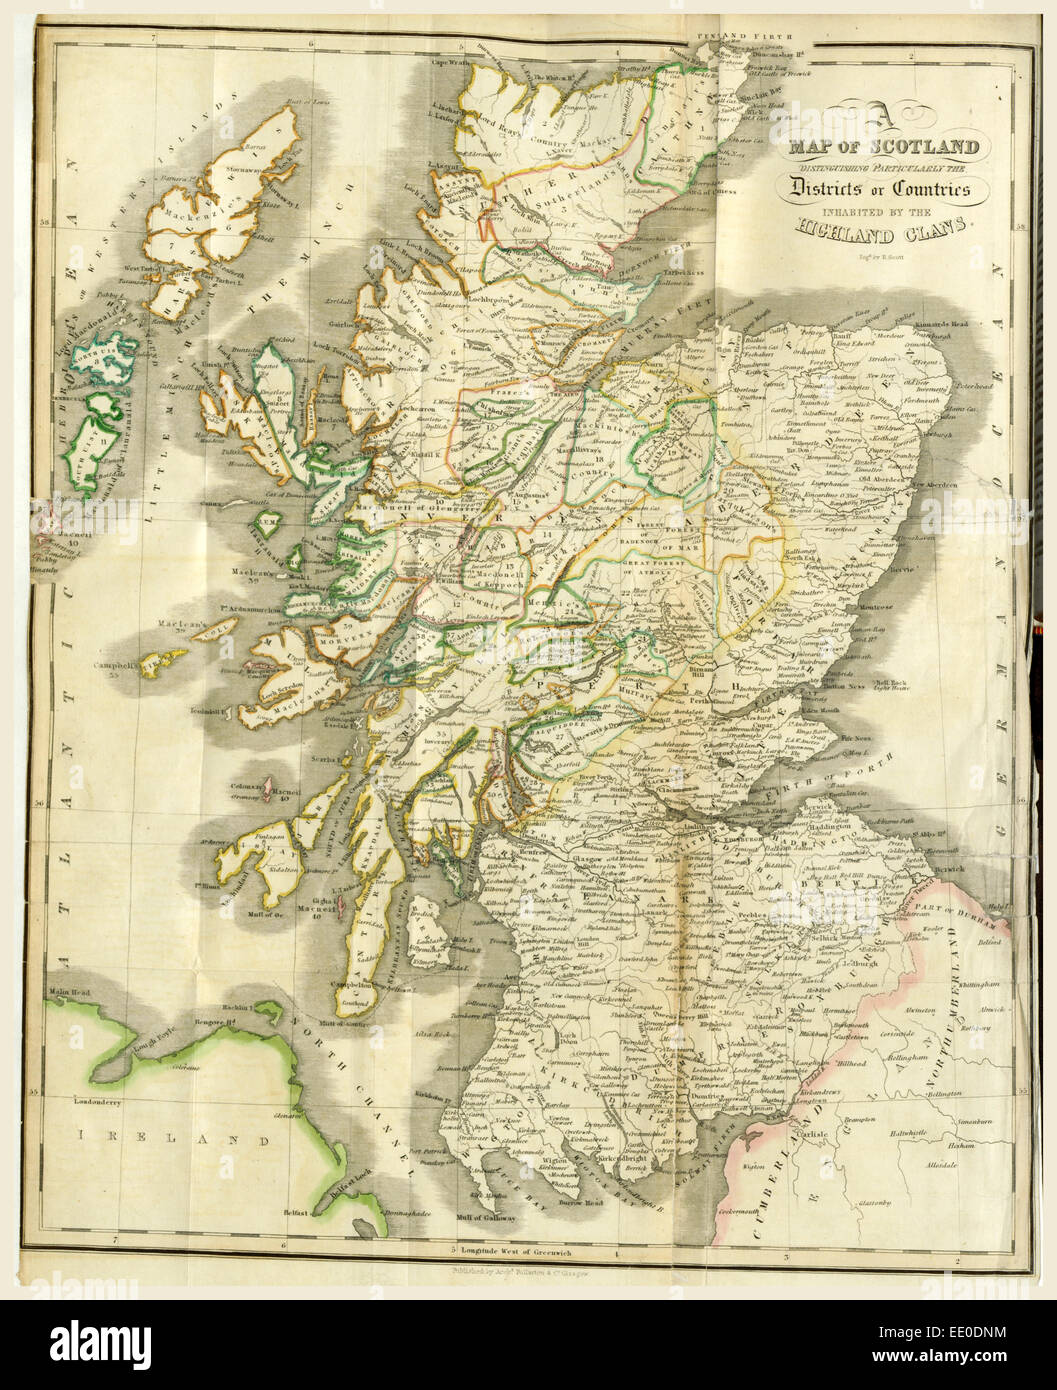 A History of the Highlands and of the Highland Clans, Map of Scotland, 19th  century engraving